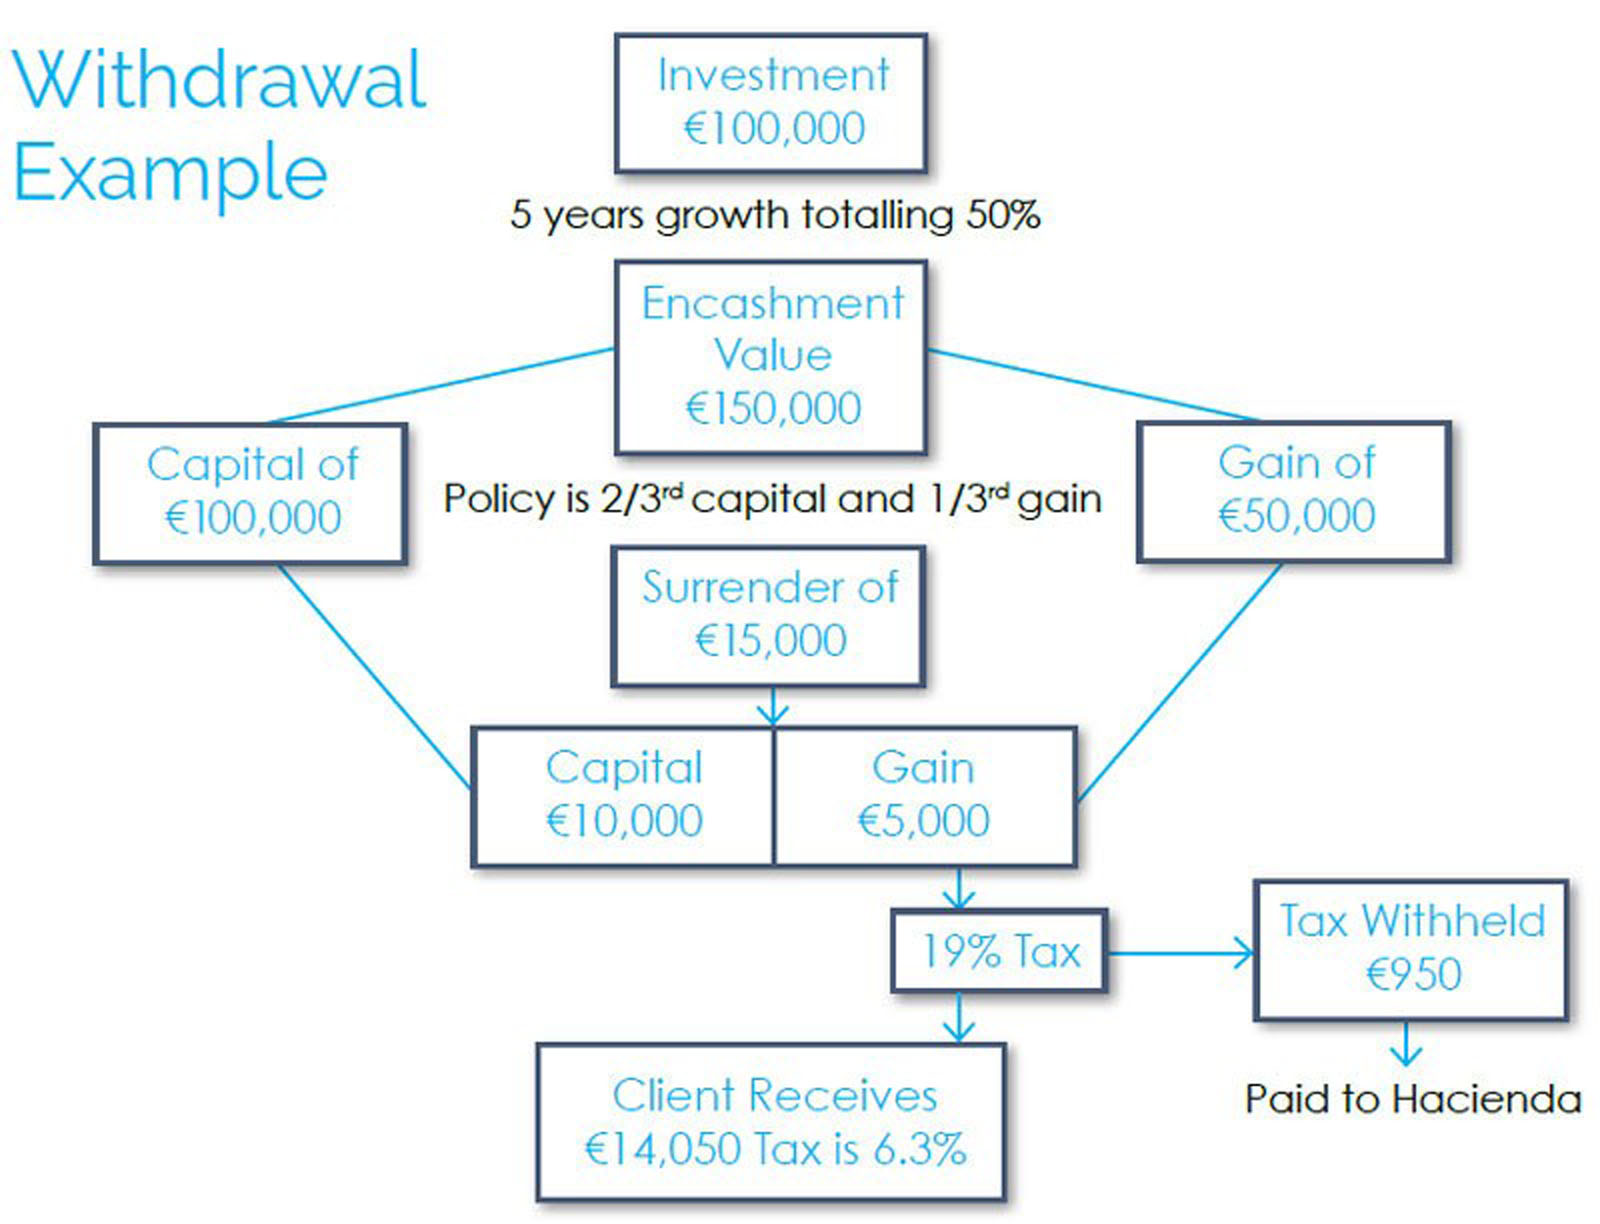 Withdrawal Example Image